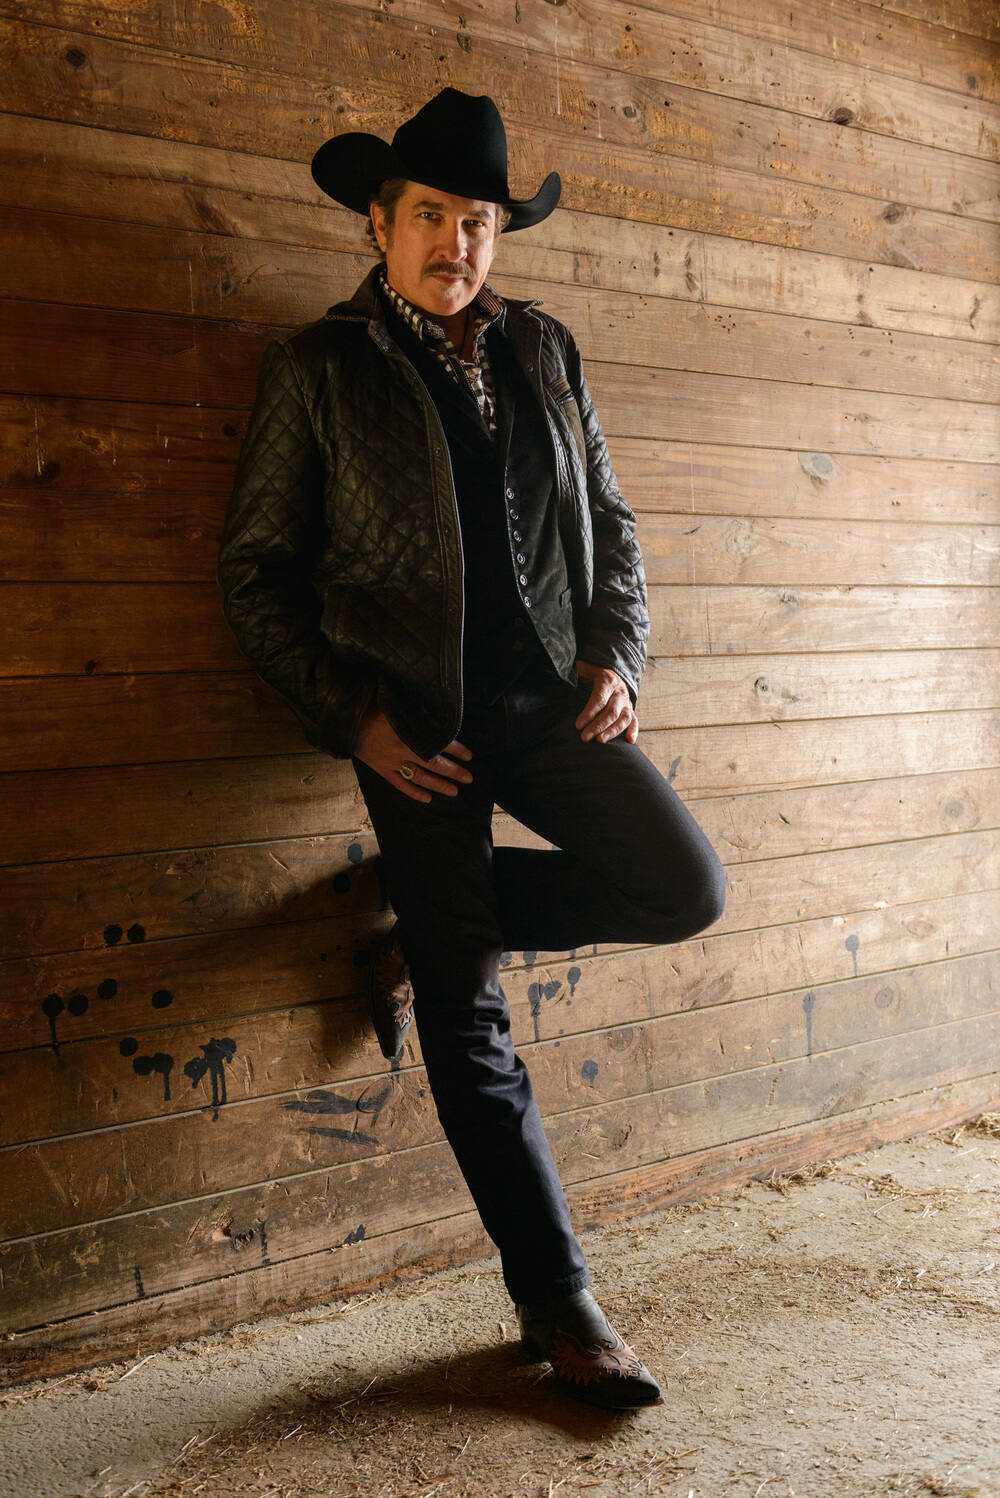 Kix Brooks is one half of the country duo Brooks and Dunn, which enjoyed such hits as 'My Maria' and 'Hard Workin' Man.'